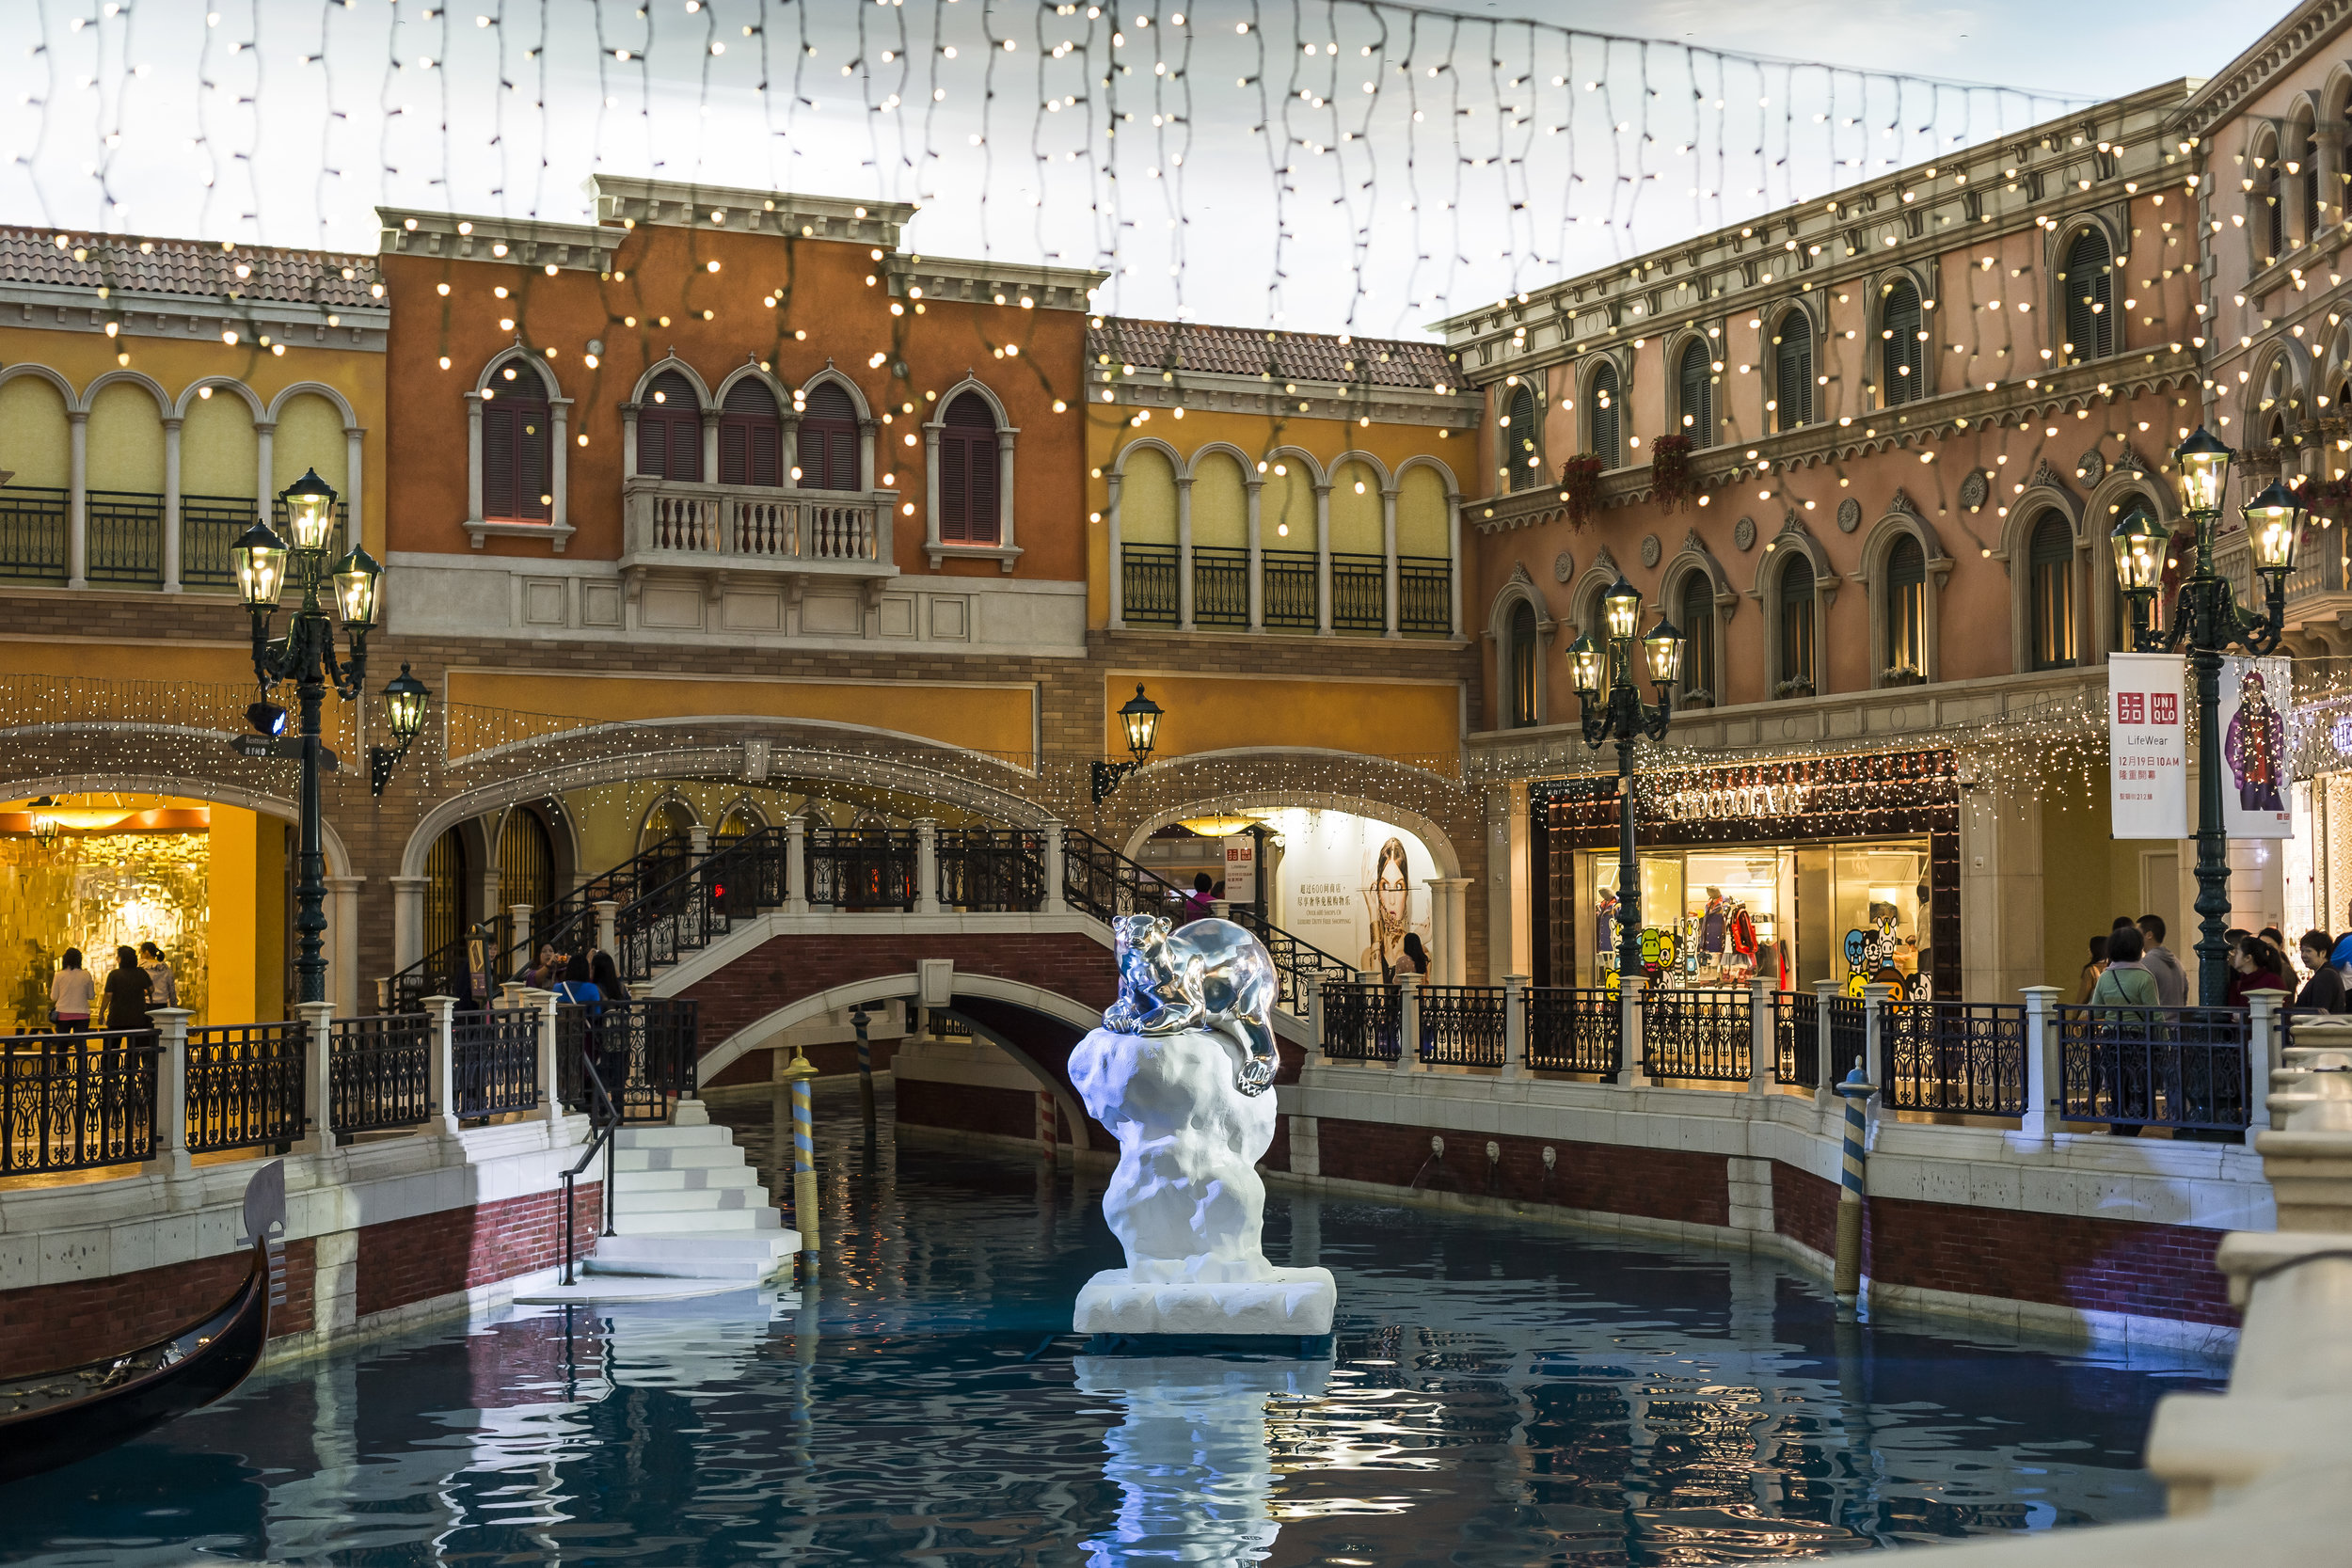 Lusher Photography - Bespoke - Venetian Christmas Installations 026.JPG